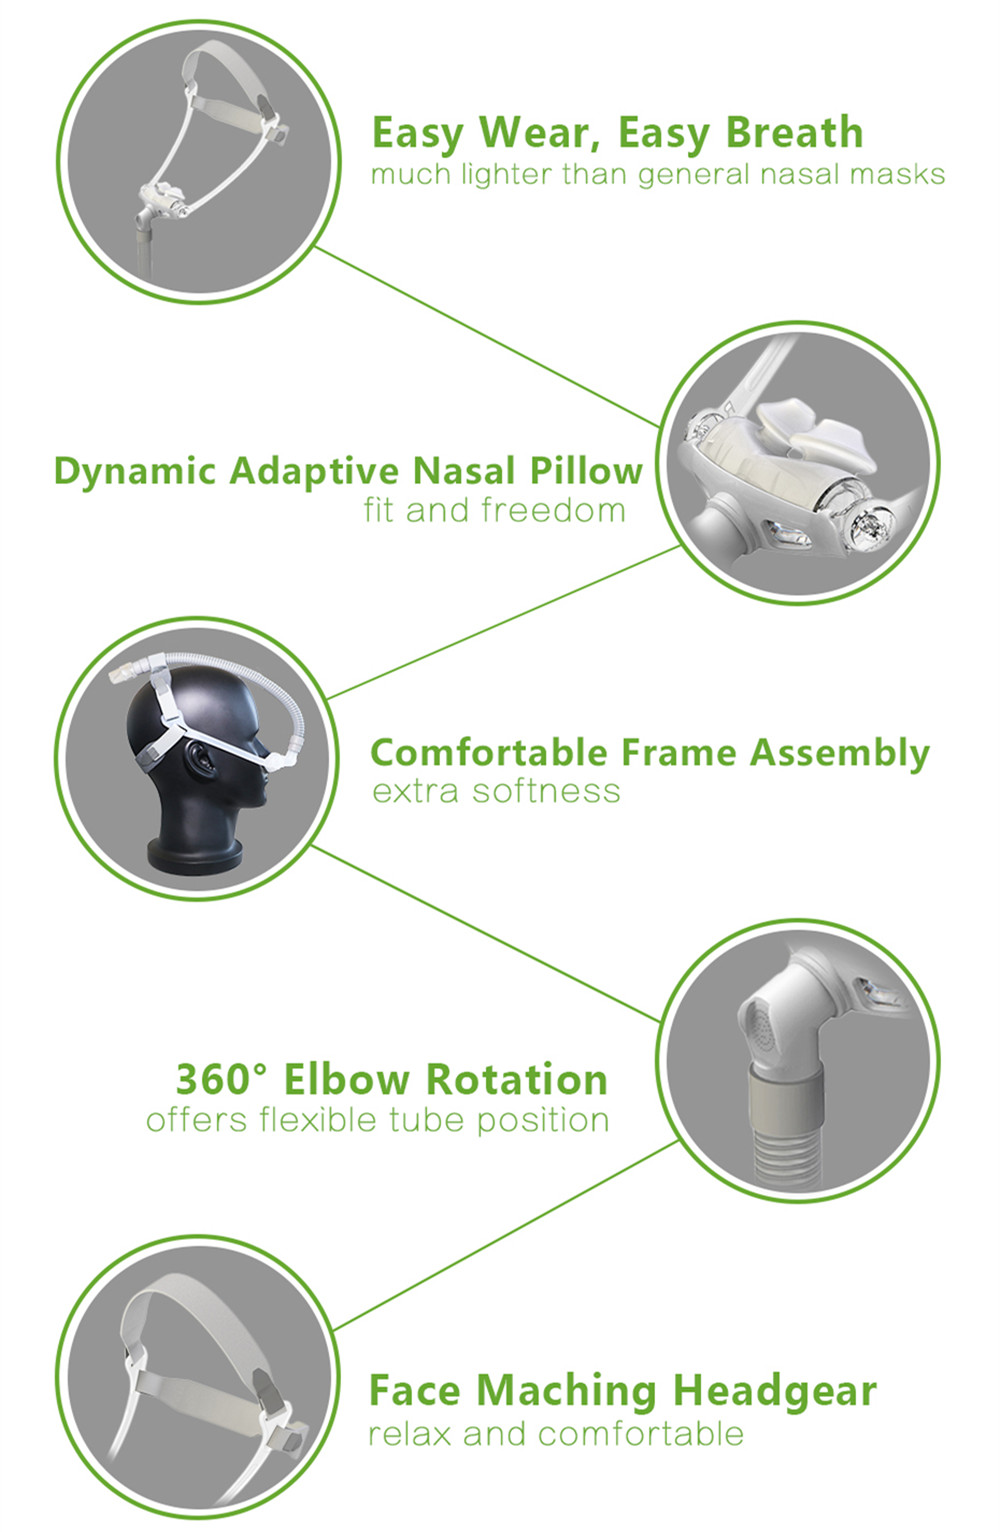 DOCTODD WNP Nasal Pillows Mask For CPAP Auto CPAP BiPAP Ventilator Sleep Health Care 3 Sizes Universal Cushion Pad Stop Snoring (5)